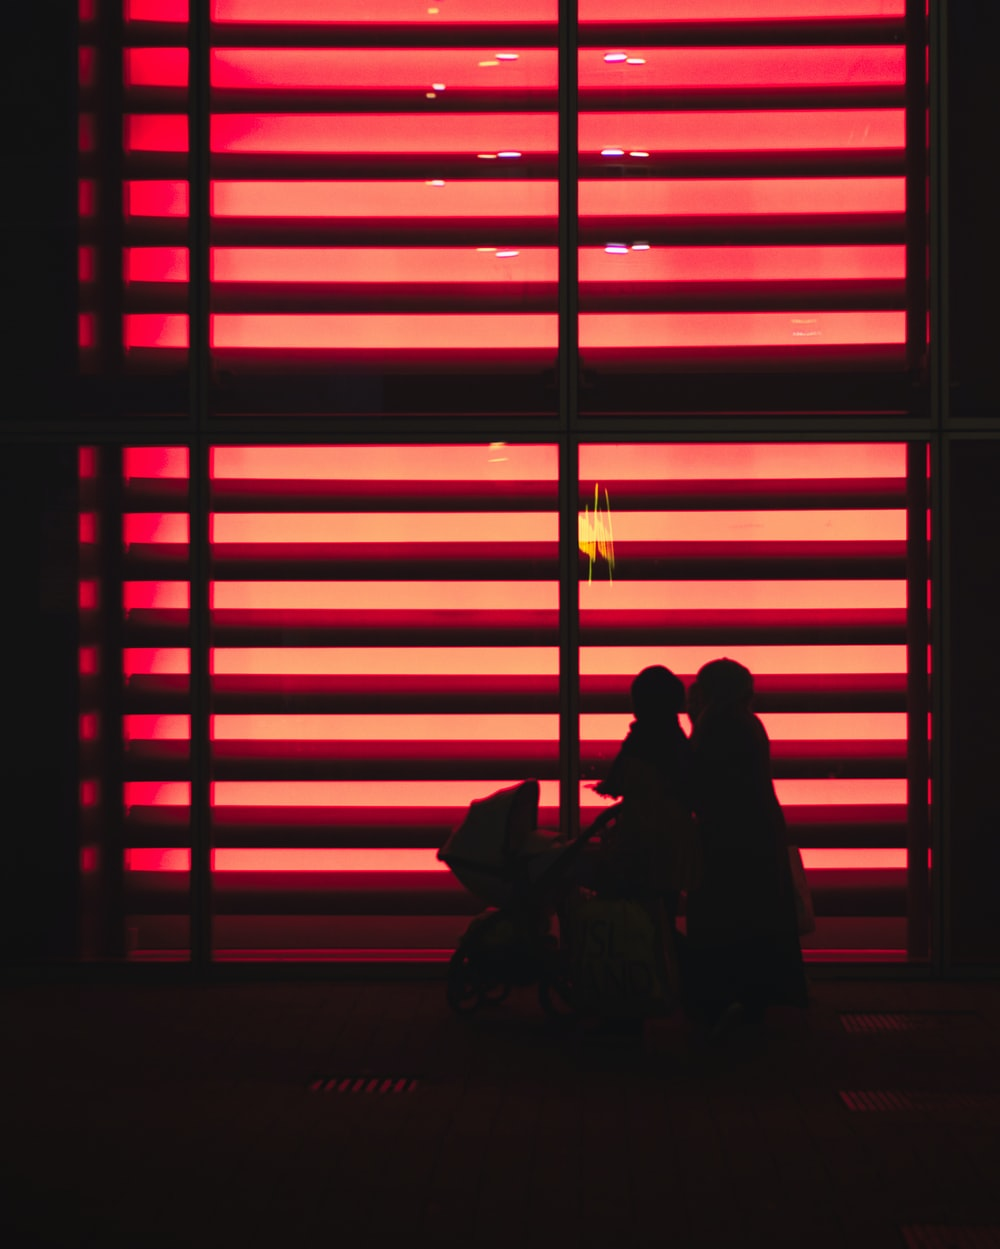 red lighted window blinds